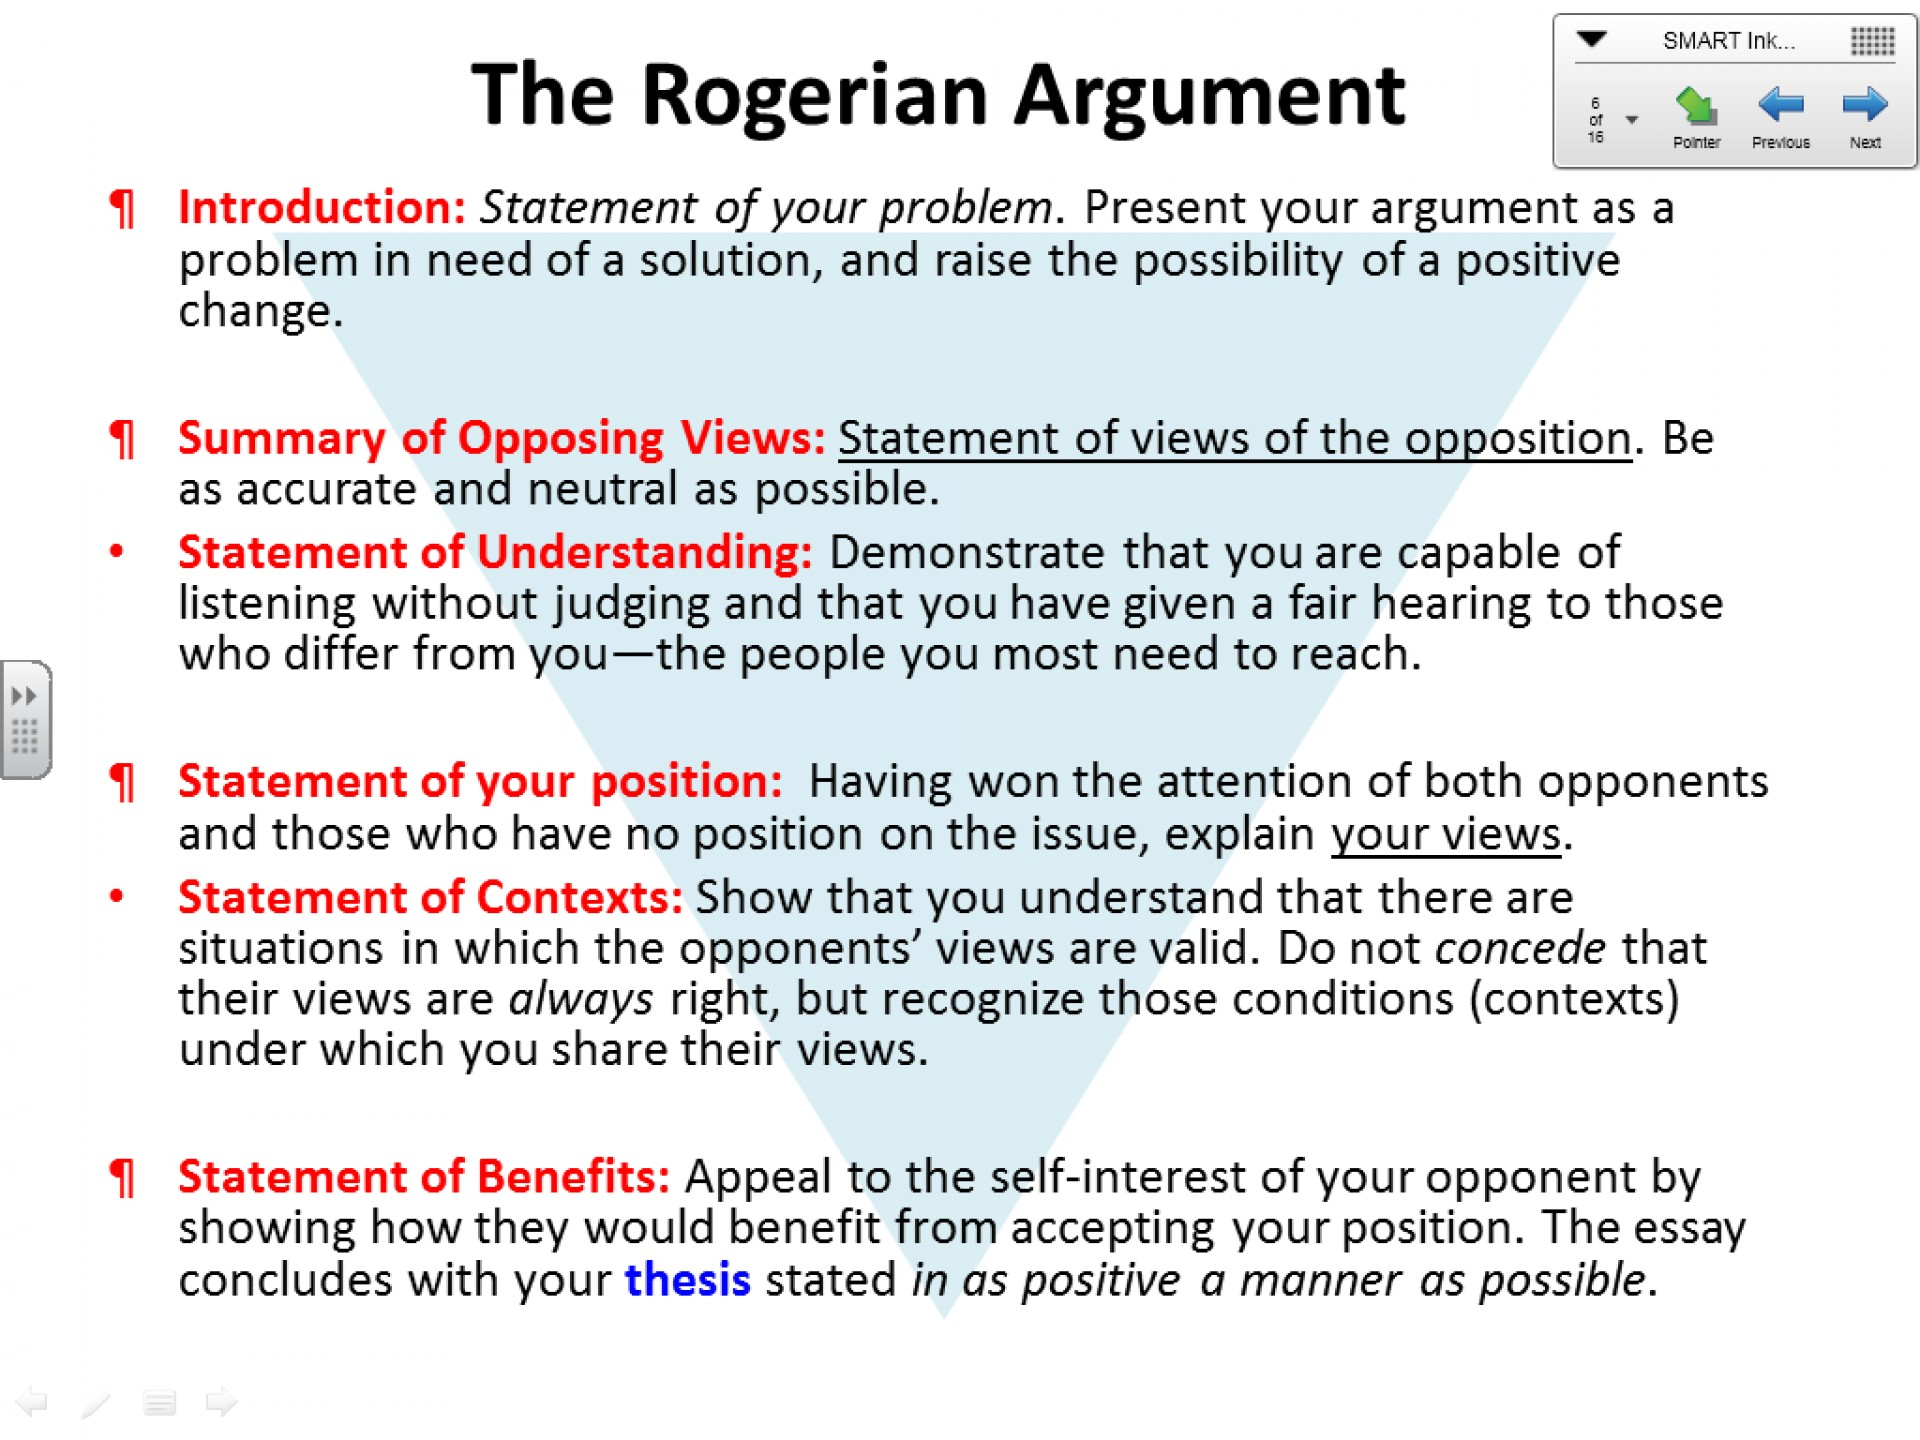 019 Argumentative Essay Fallacy Custom Paper Help Gipaperzlro What Is An Definition Roge Example And Its Parts Brainly Topics Ppt Powerpoint Outline Pdf Fantastic Define Claim 1920